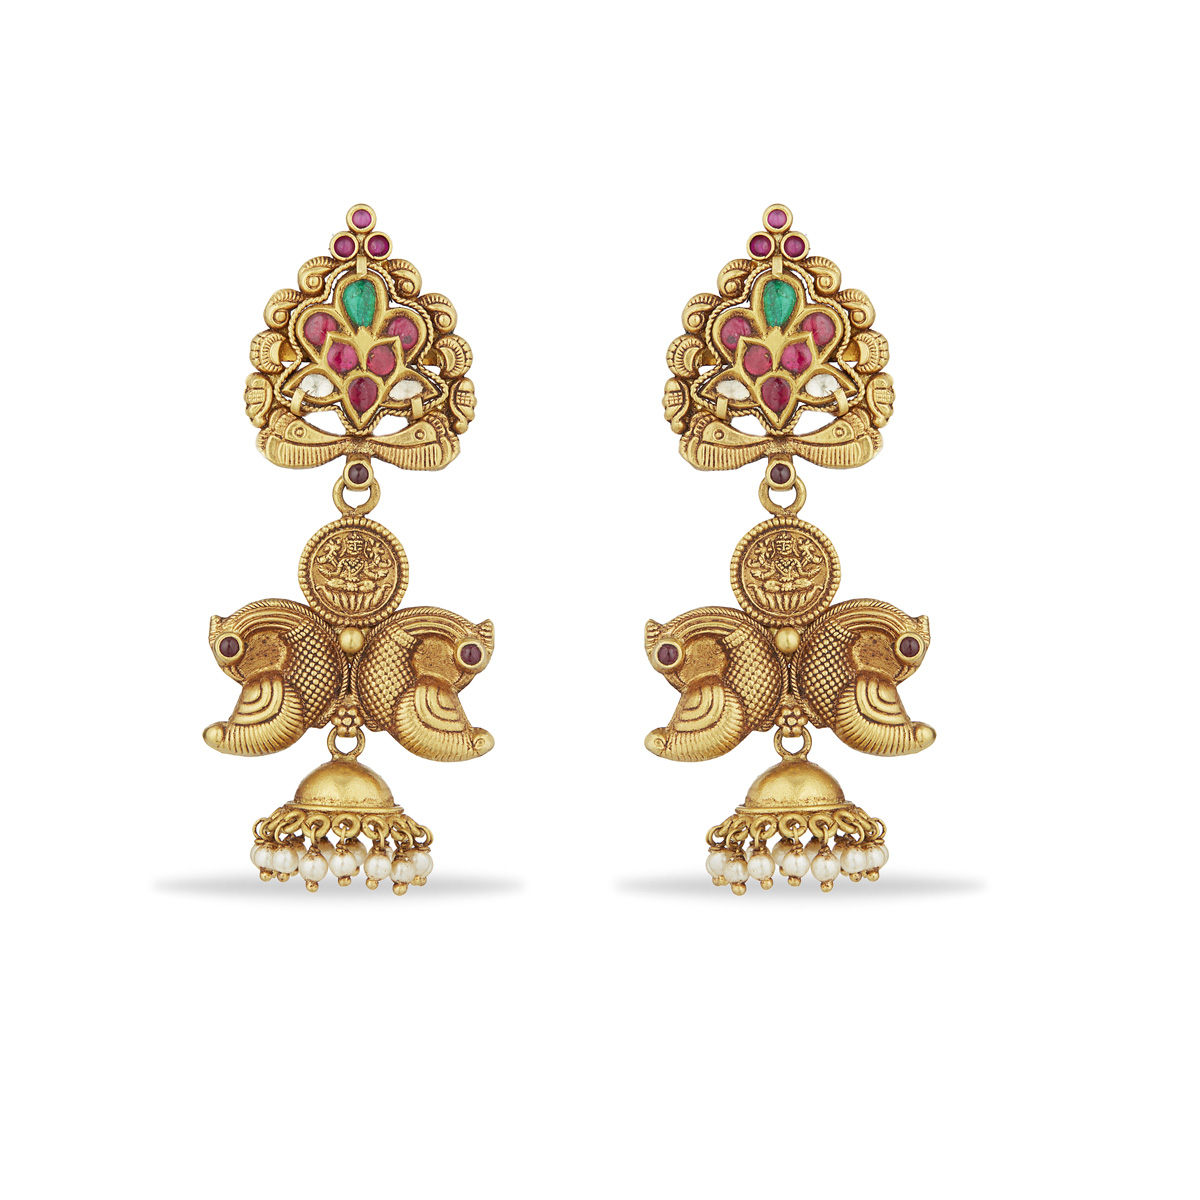 The Lizandra Mayur Earrings